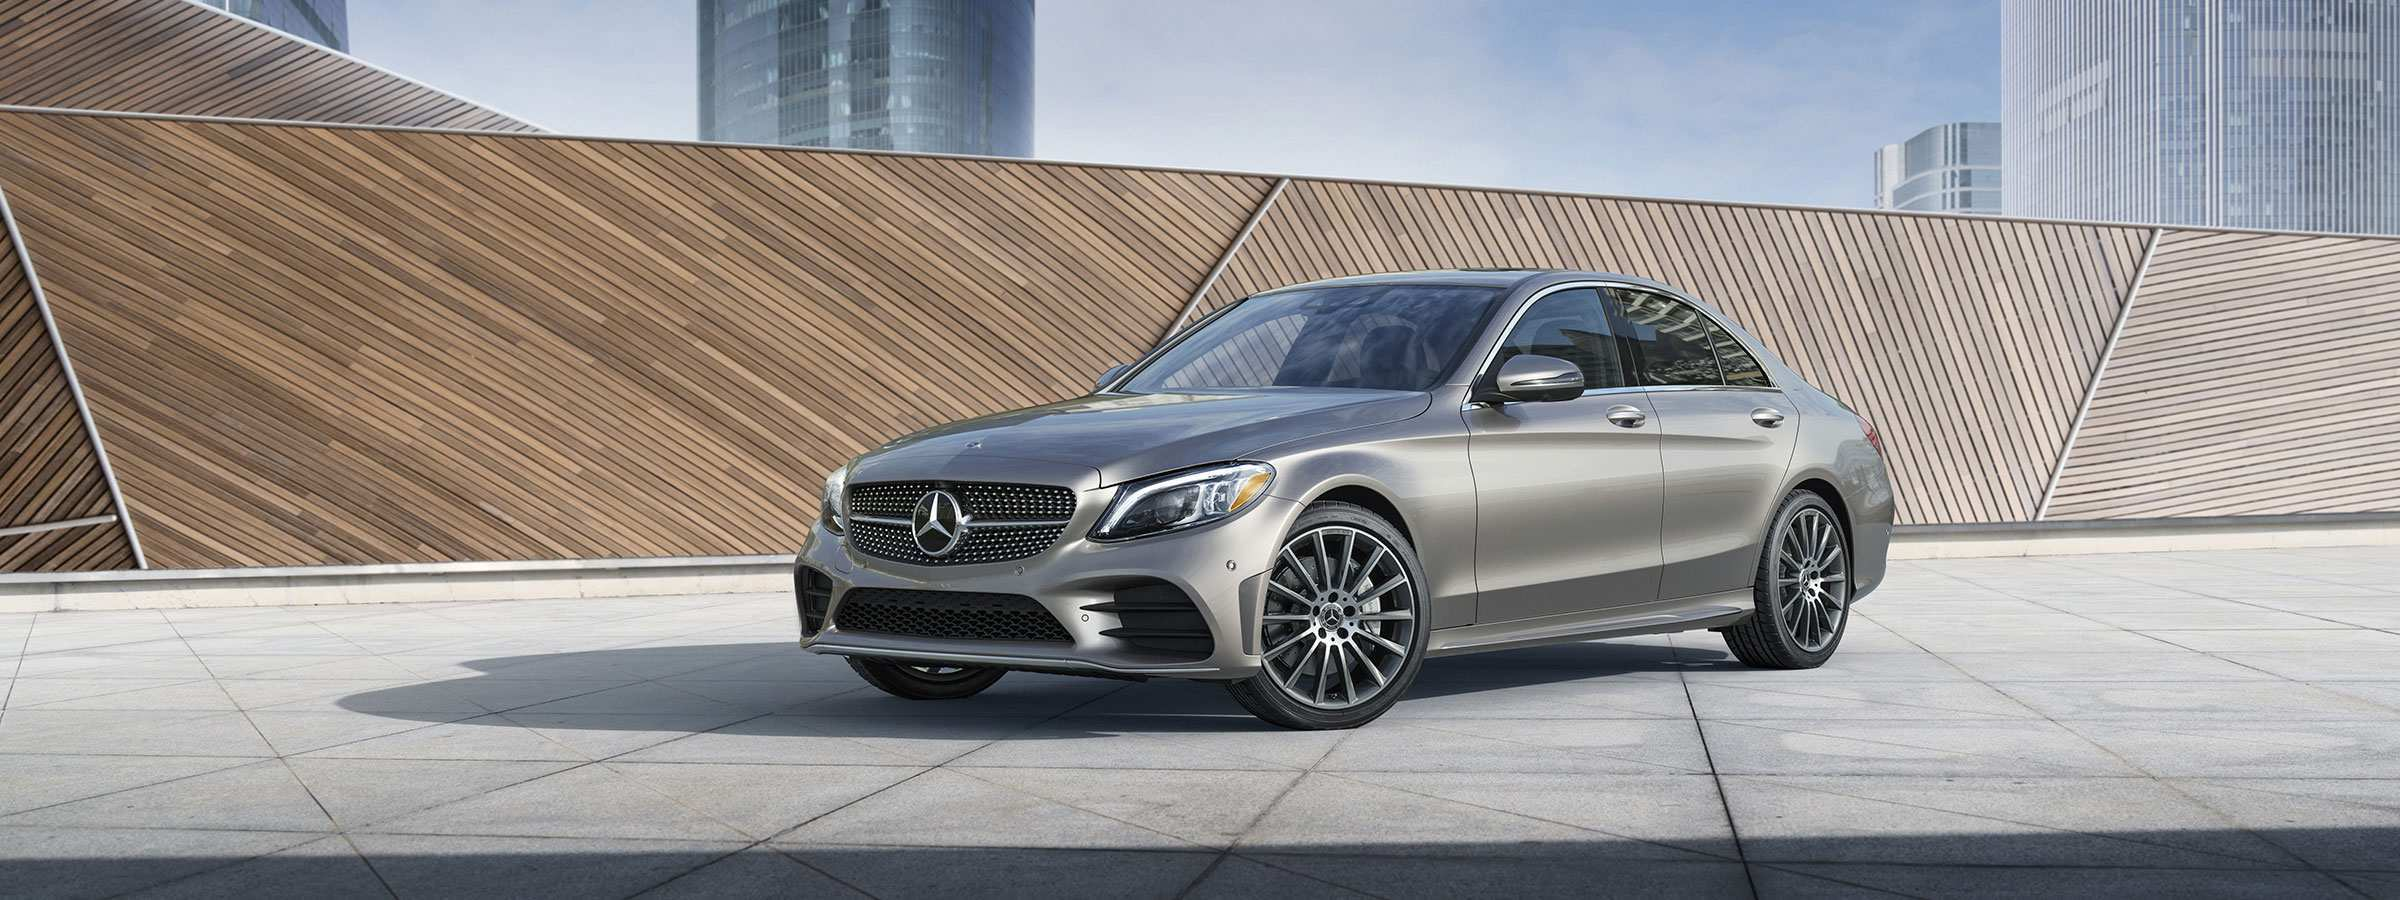 27 Best C250 Mercedes 2019 Price And Release Date